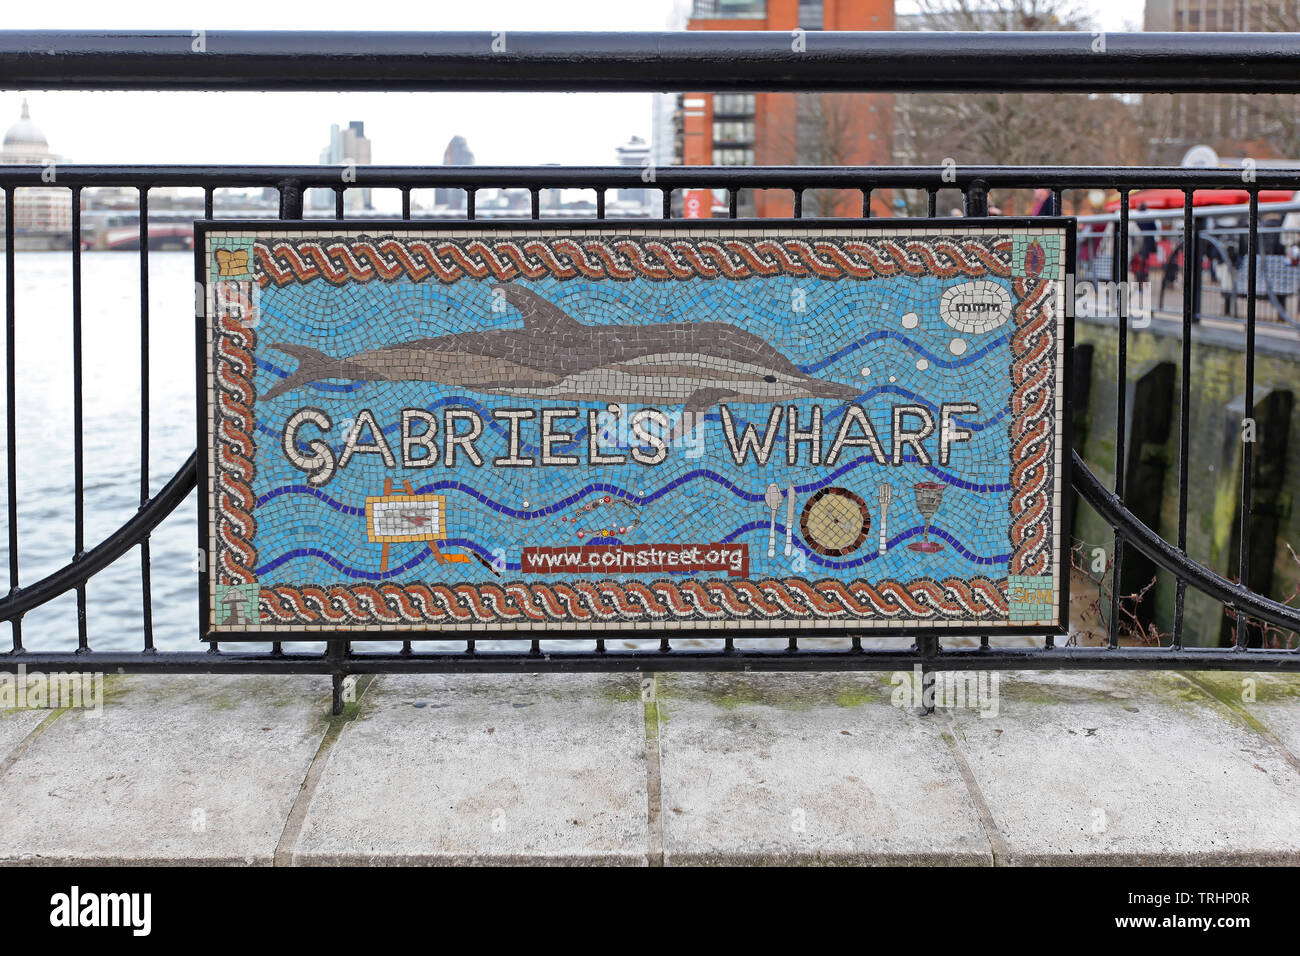 London, United Kingdom - January 26, 2013: Gabriel Wharf Mosaic at Thames River Southwark in London, UK. - Stock Image